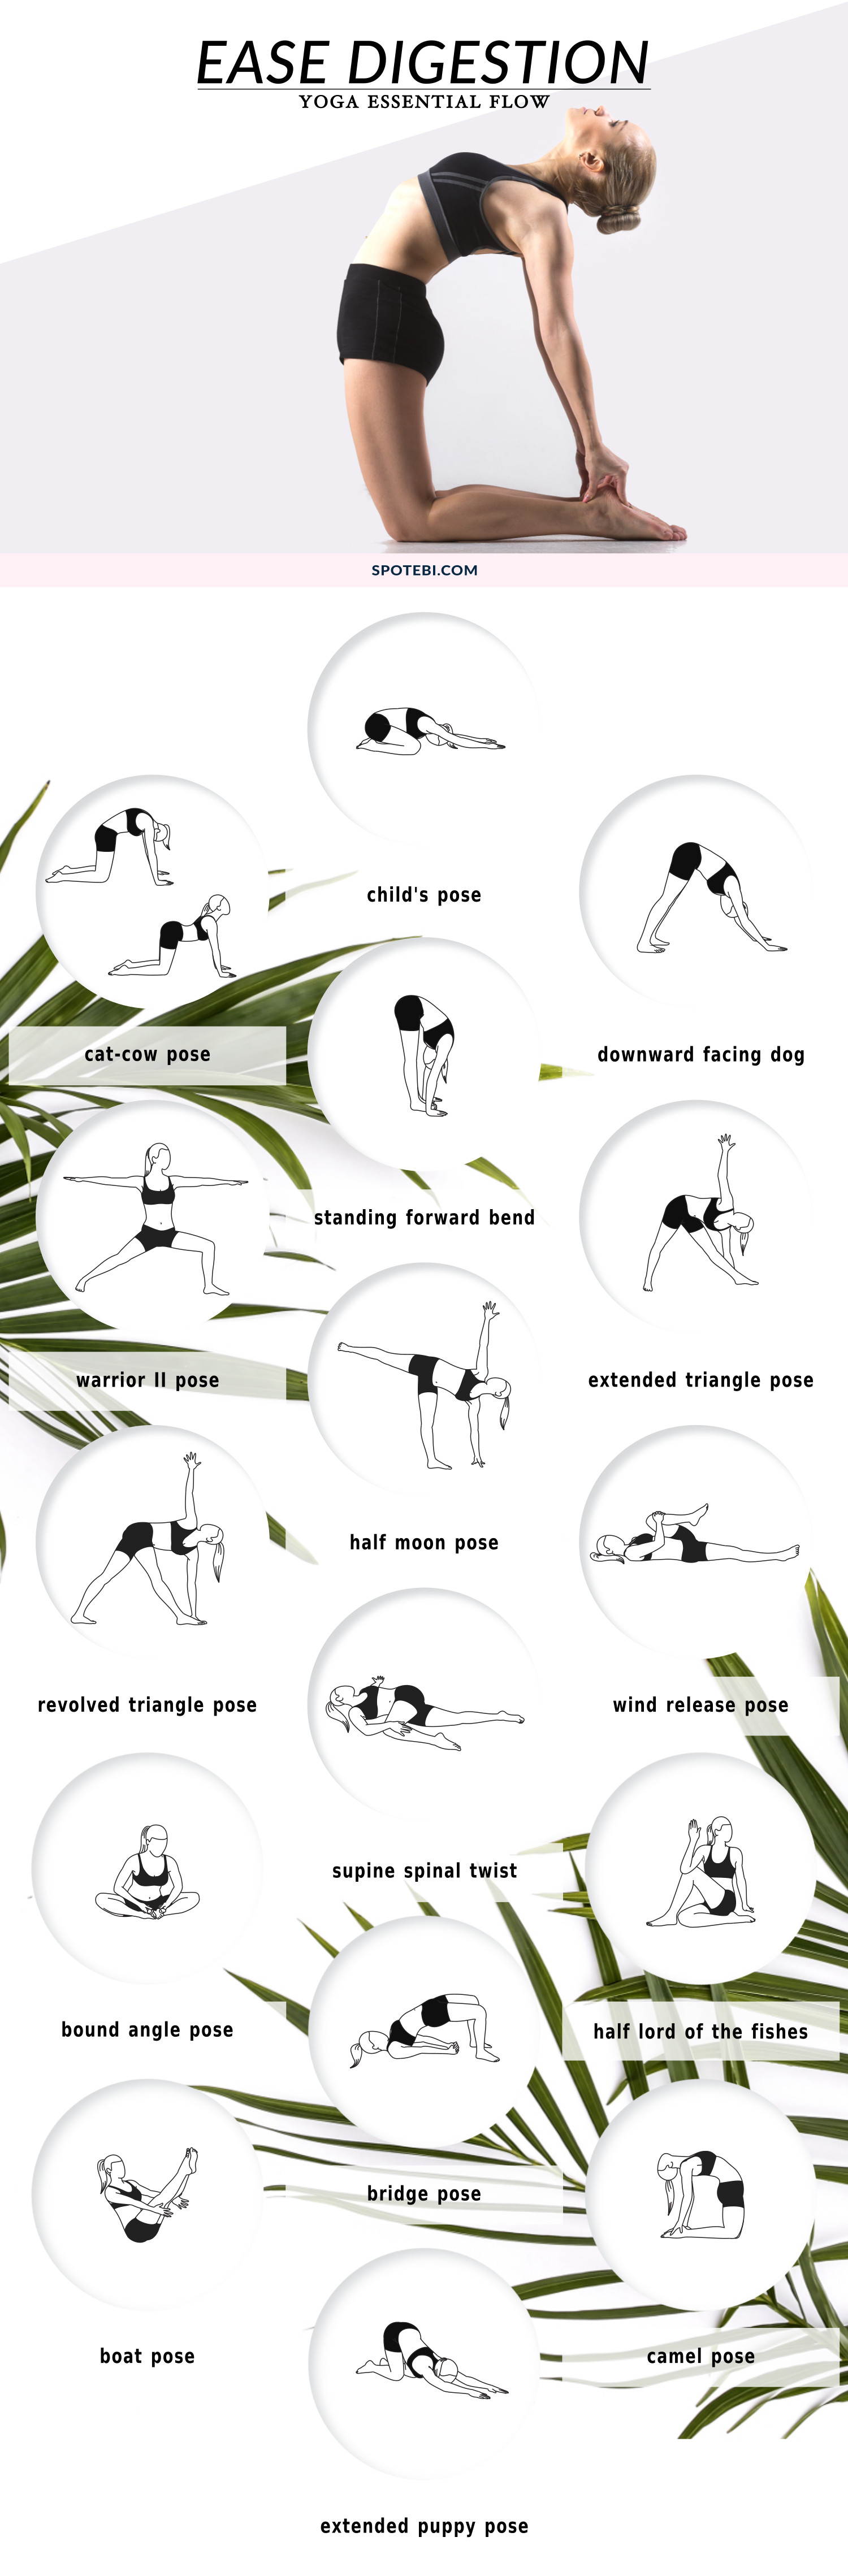 Boost digestion, relieve constipation and de-bloat with this 20-minute yoga essential flow. Pair these 17 yoga poses with deep breathing to massage the abdominal organs, increase circulation and get things moving! https://www.spotebi.com/yoga-sequences/ease-digestion/